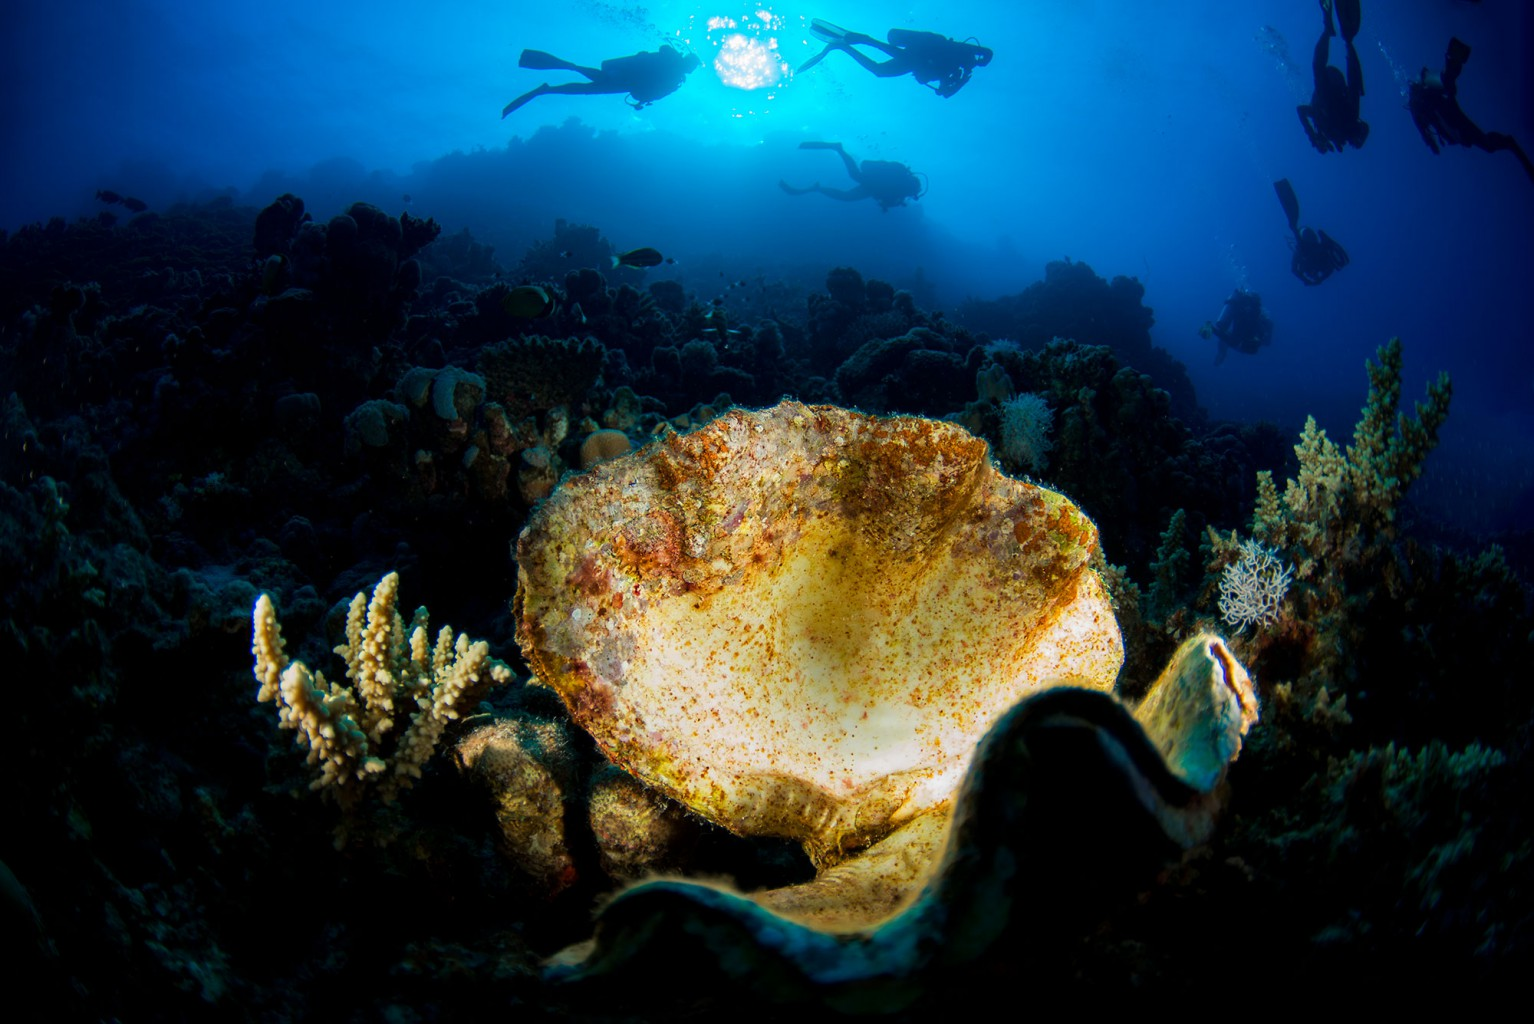 Marsa Shagra Reef, Red Sea, Egypt